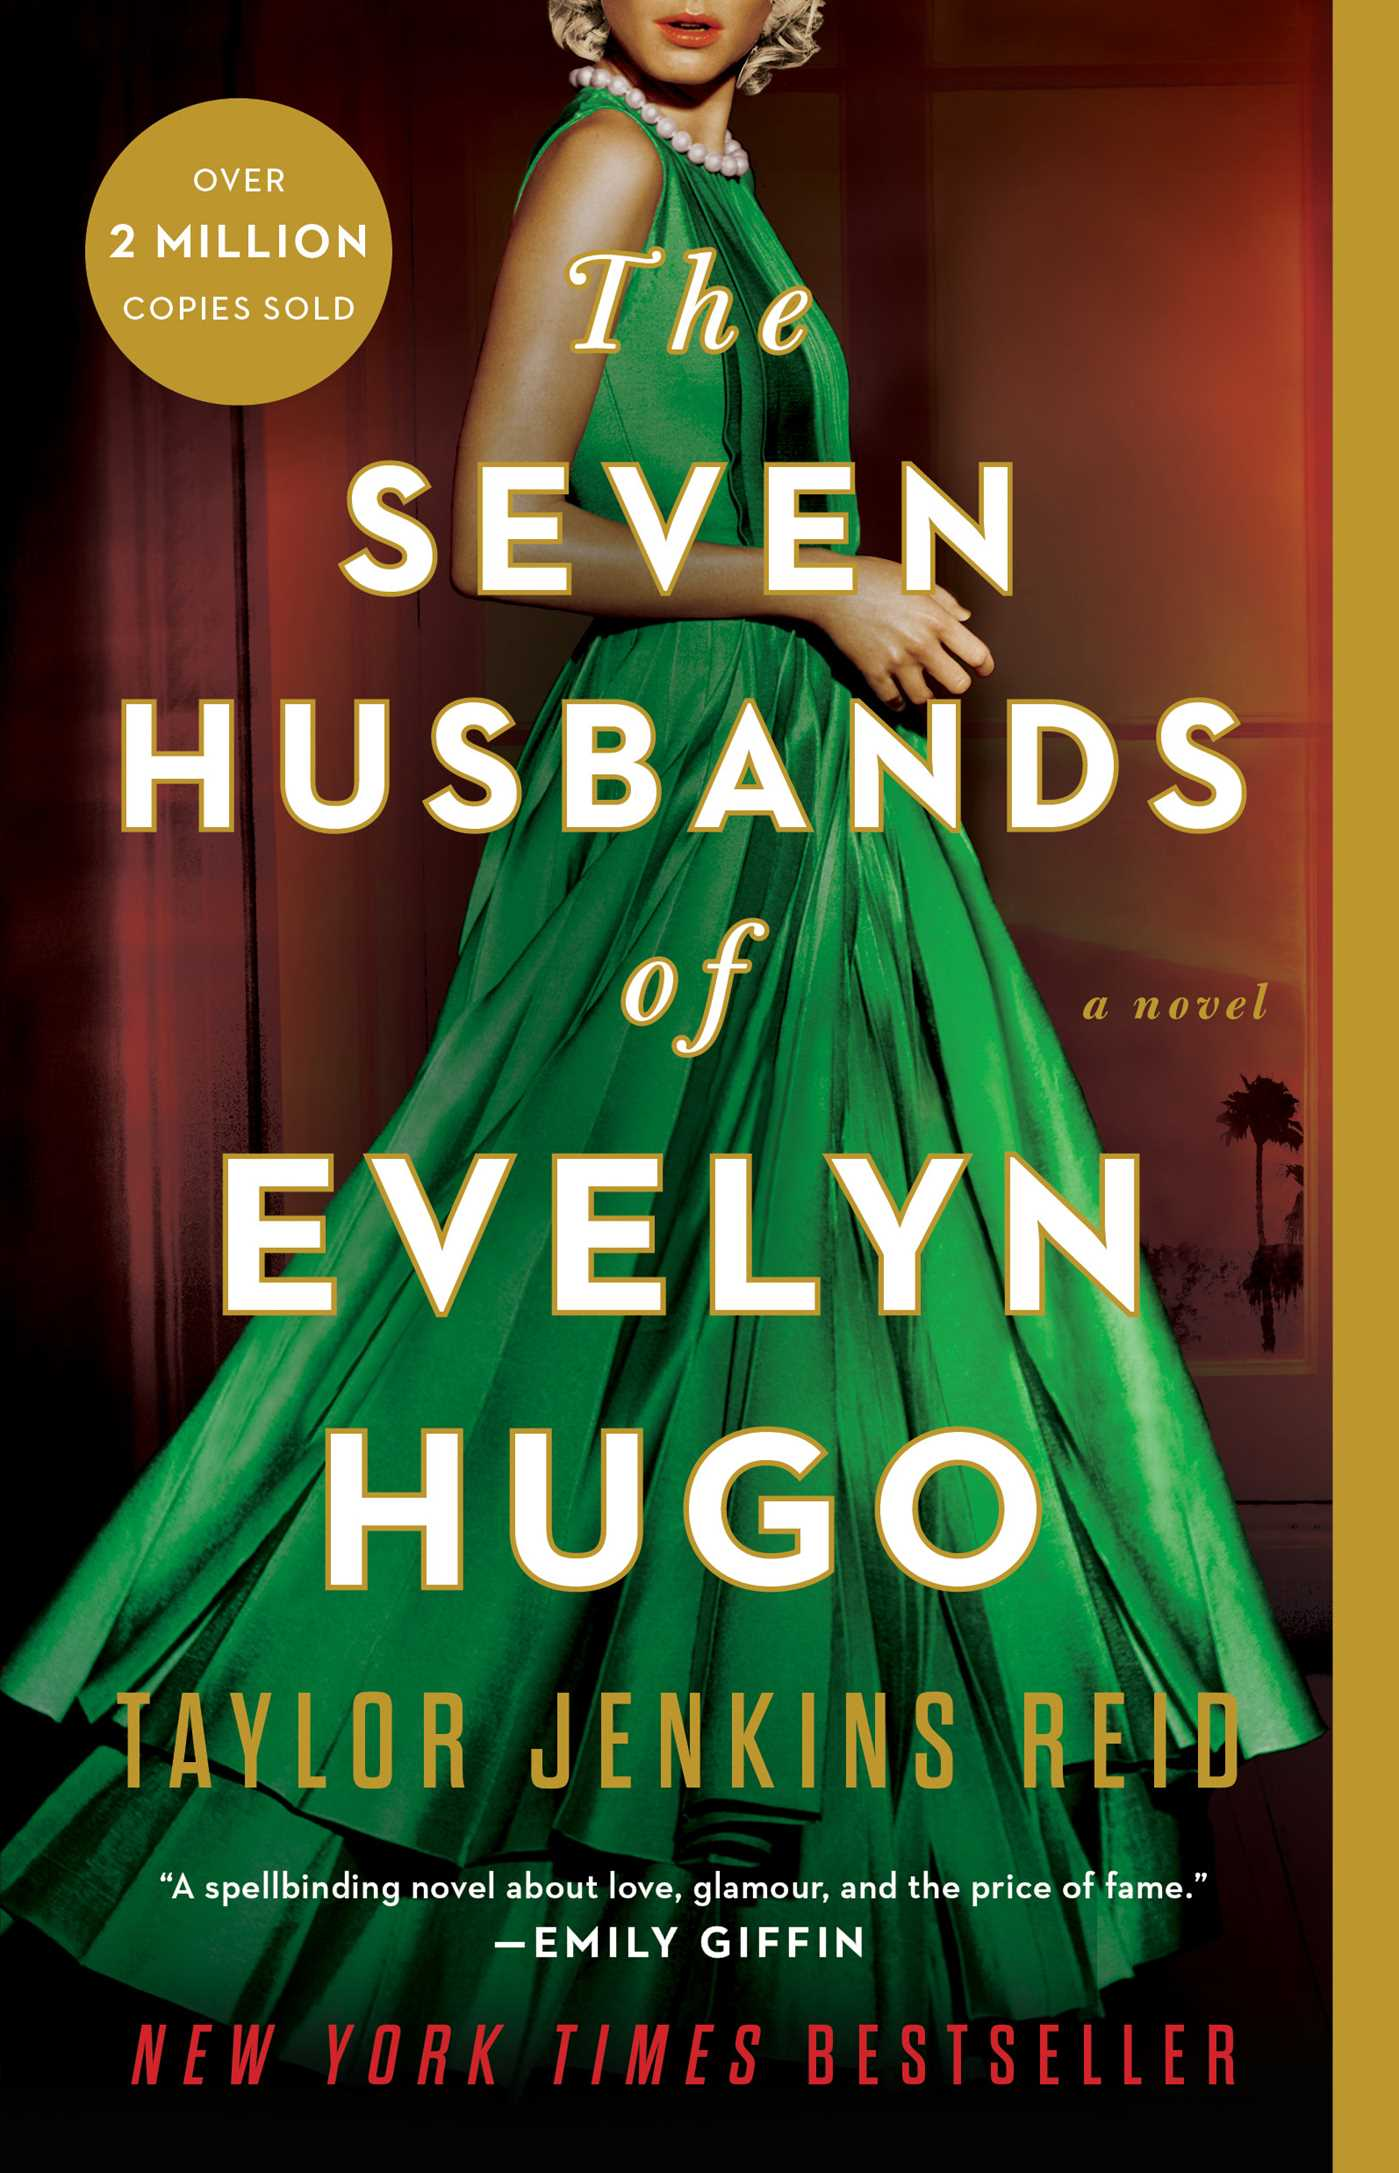 The seven husbands of evelyn hugo 9781501161933 hr